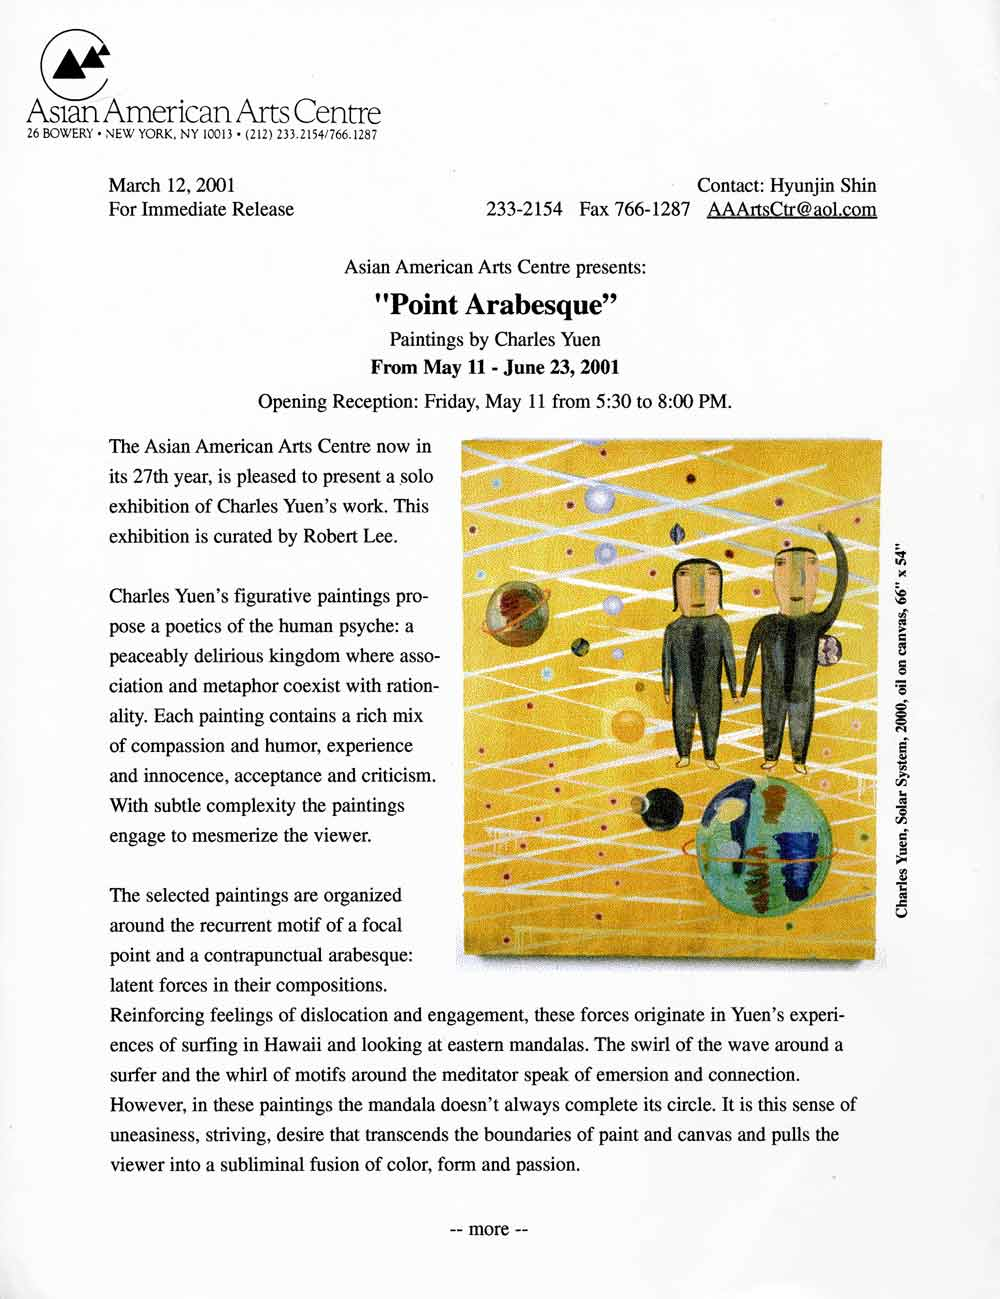 Point Arabesque press release, pg 1